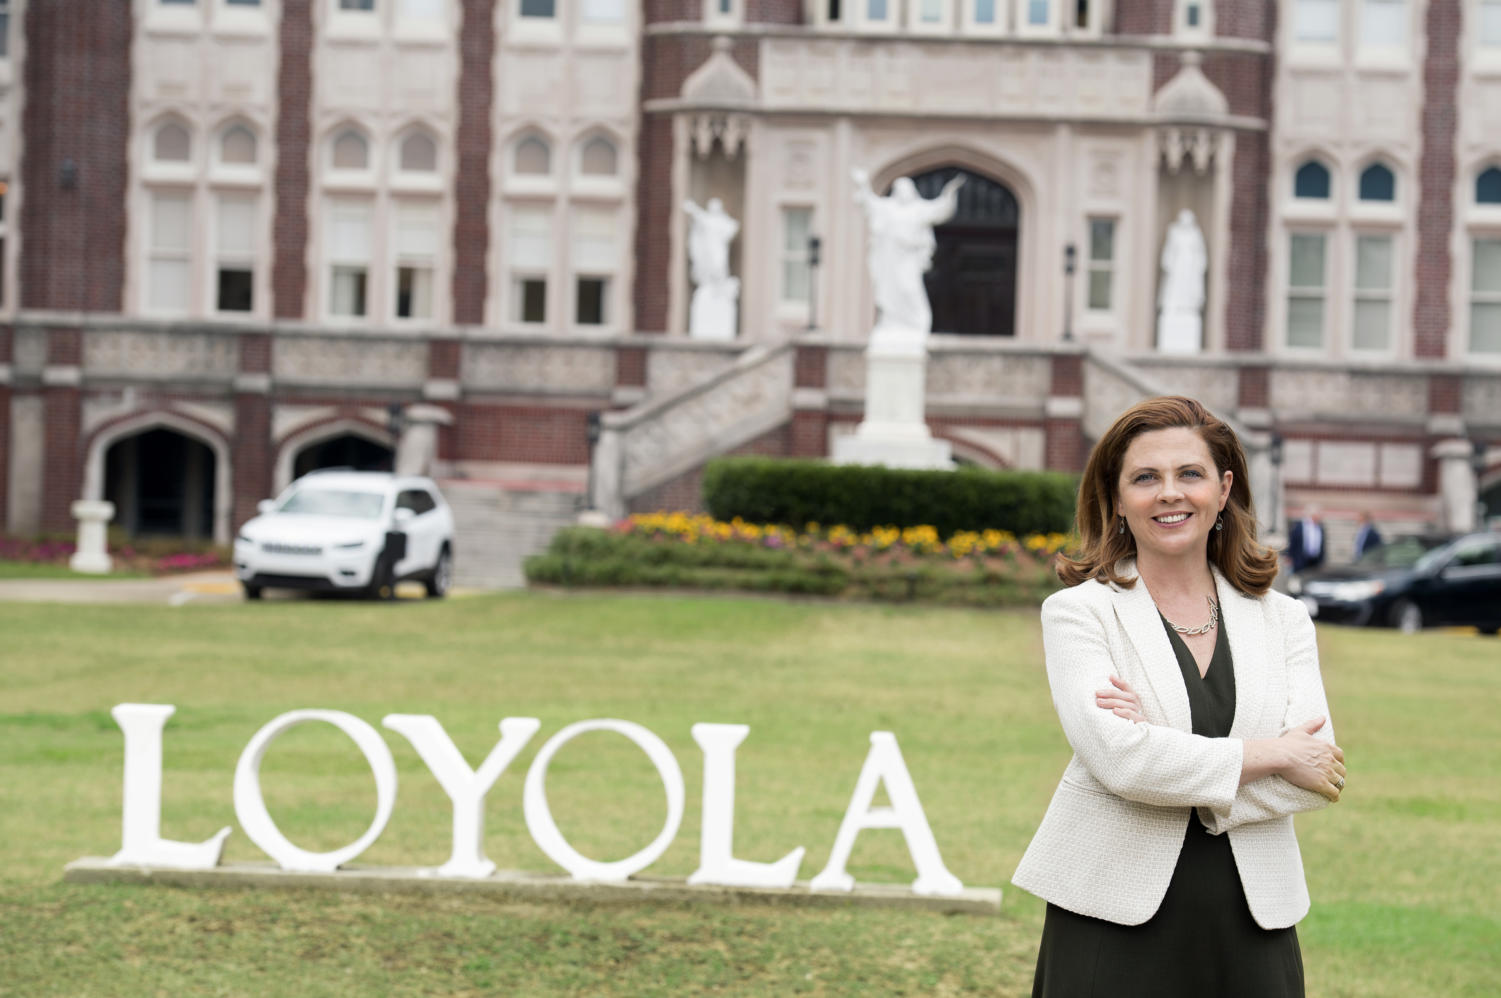 Tania Tetlow has been elected as Loyola's next president. She is the university's first non-Jesuit and first female president.